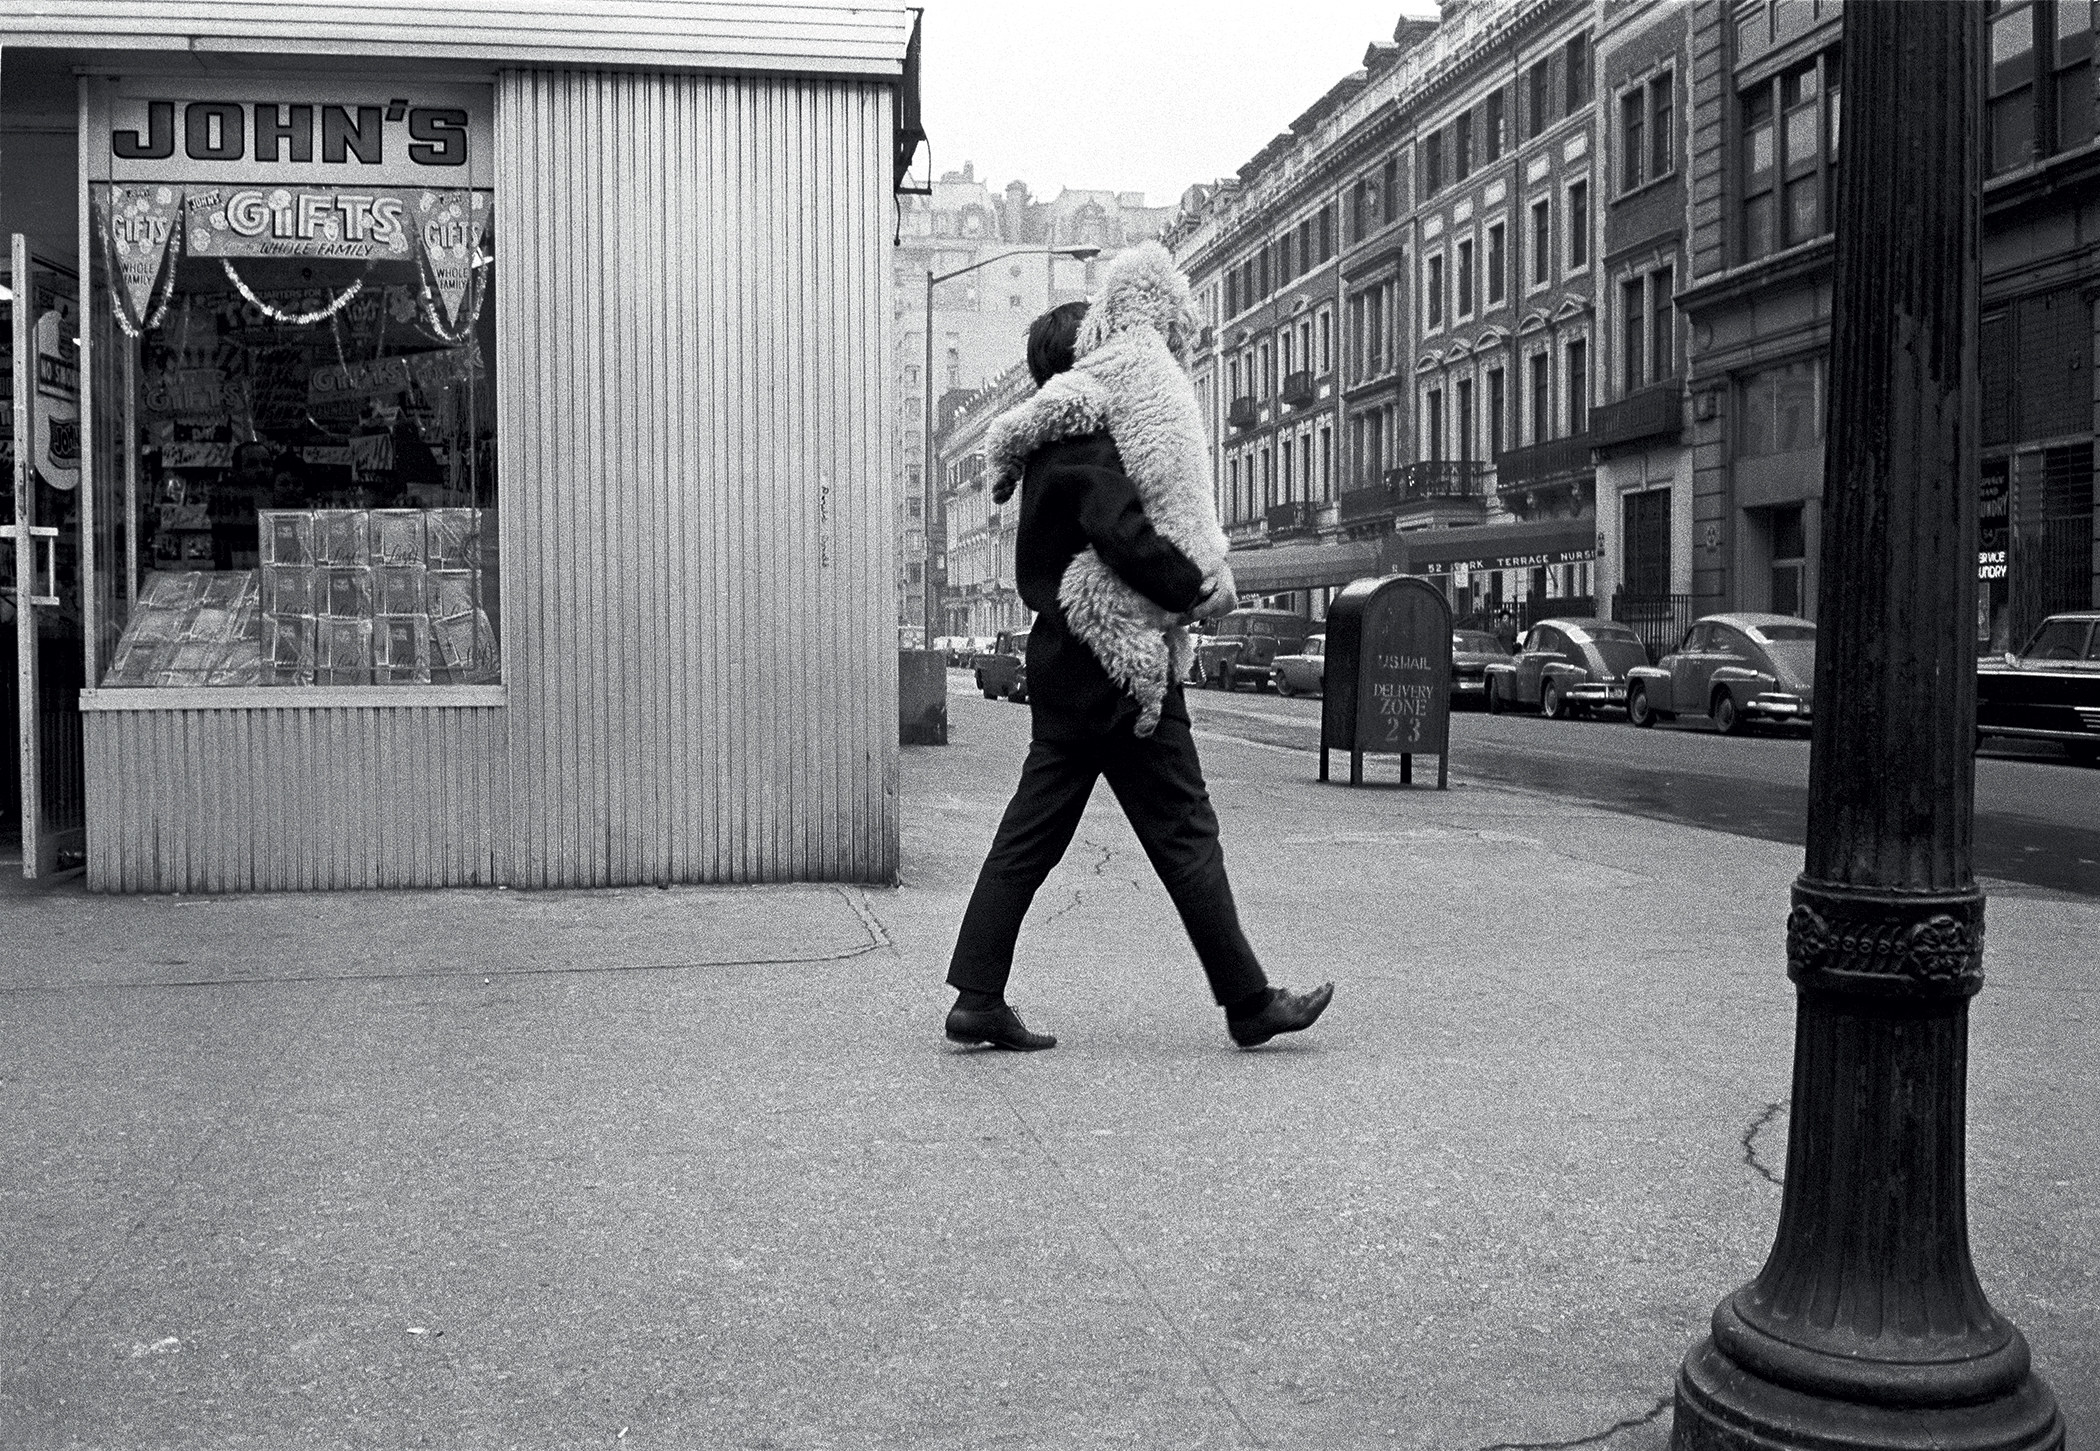 A man carries a large white dog on a city street